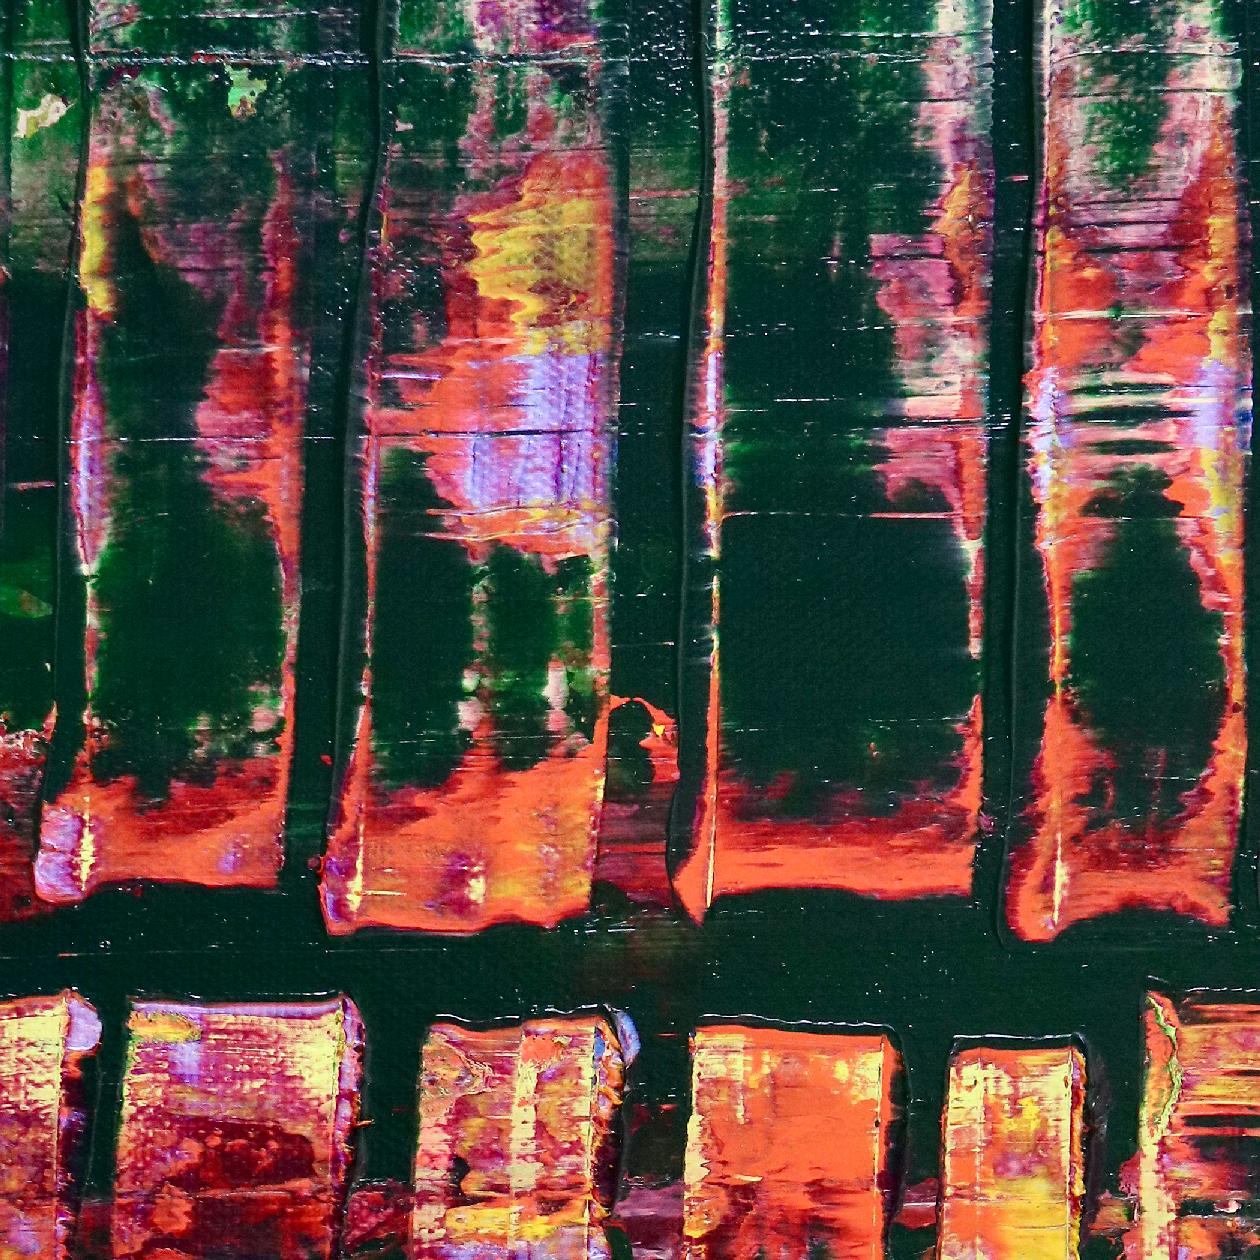 SOLD / Nestor Toro's work Modern Spectra and Lights (2020) 18x24 inches featured in New This Week - September 28, 2020 collection at Saatchi Art!